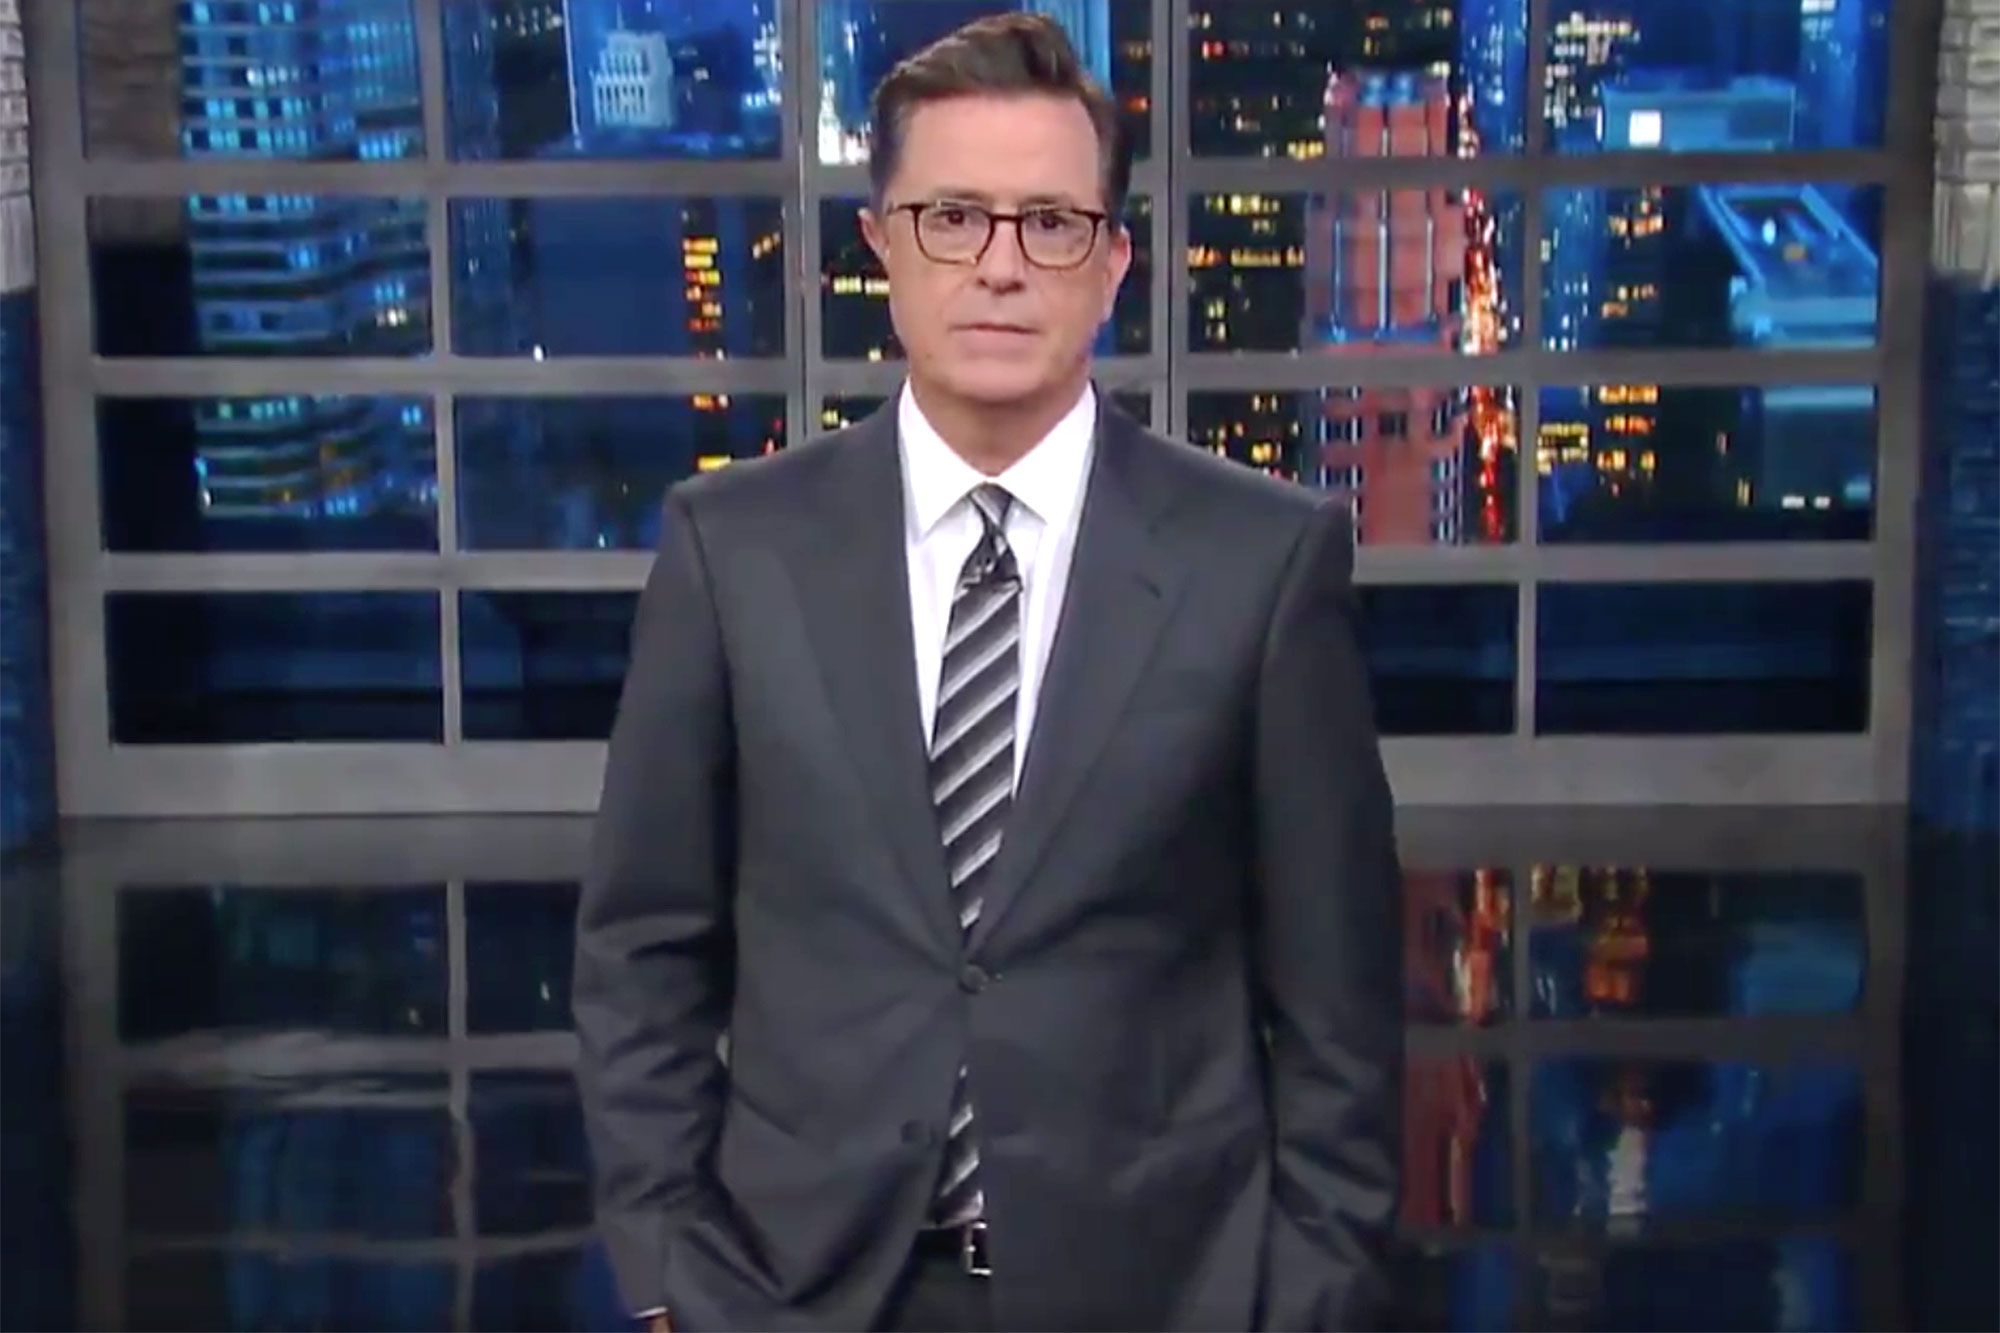 stephen colbert The Late ShowCredit: The Late Show/Twitter